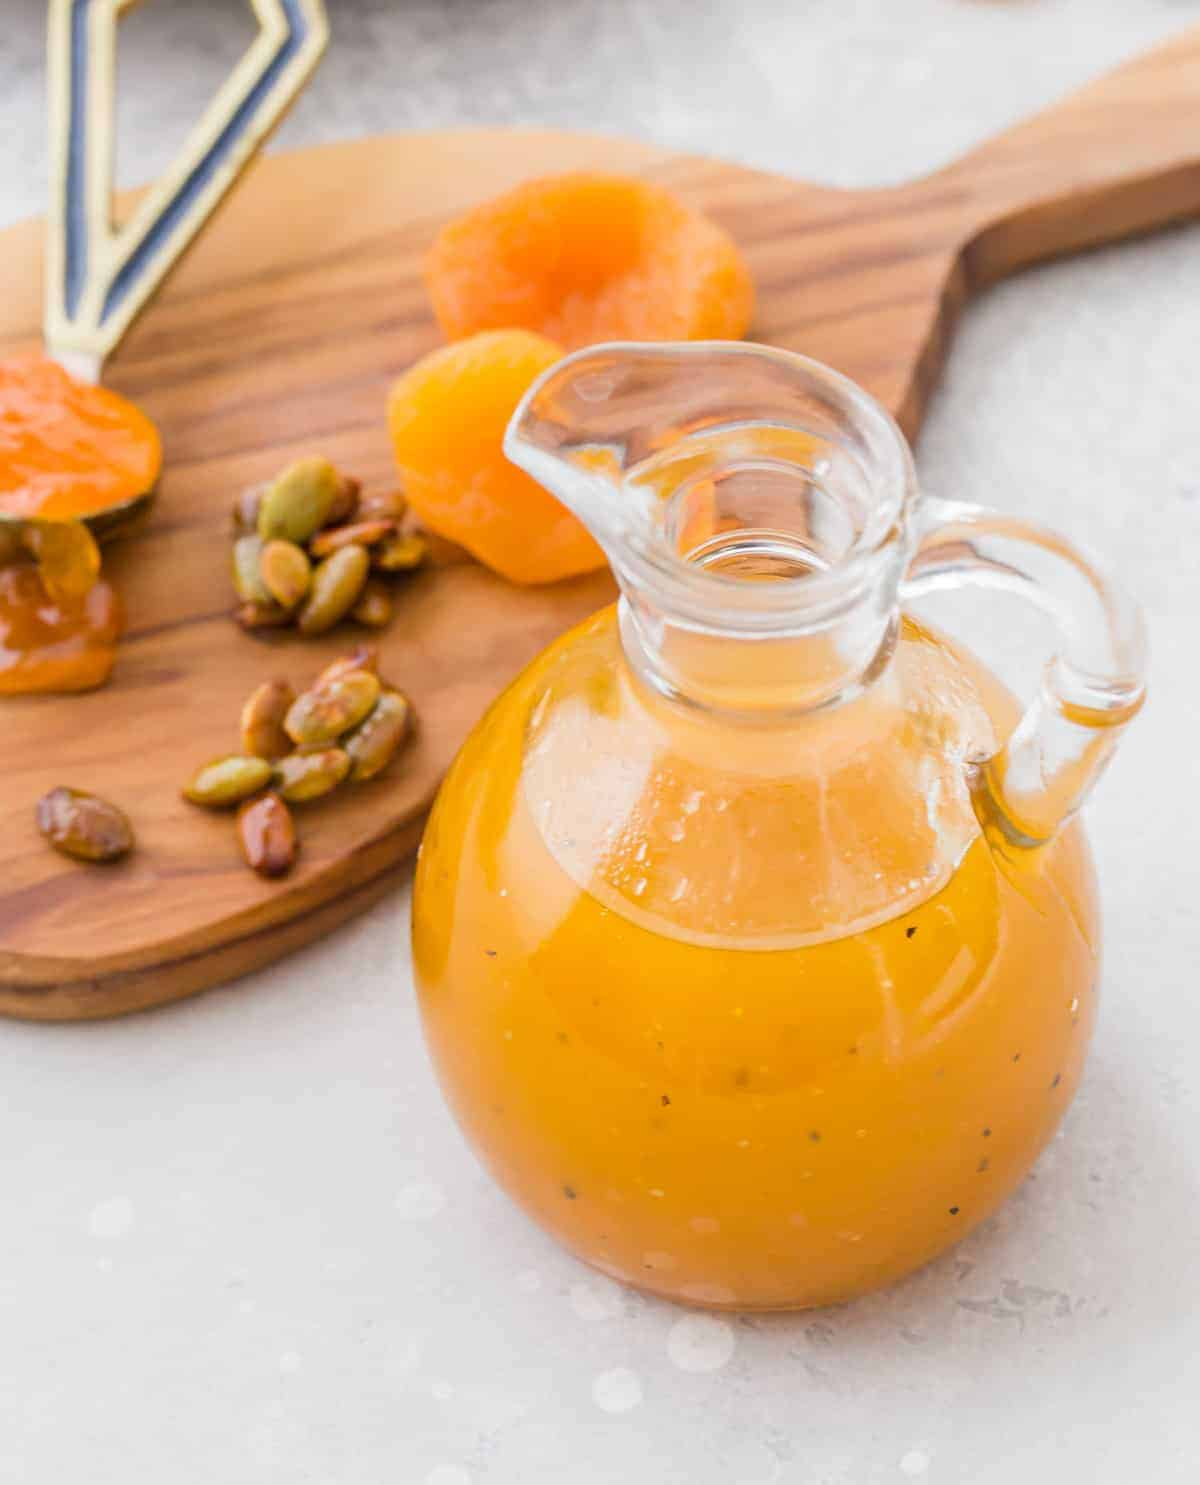 Dressing in a glass bottle, apricots and pepitas in the background.